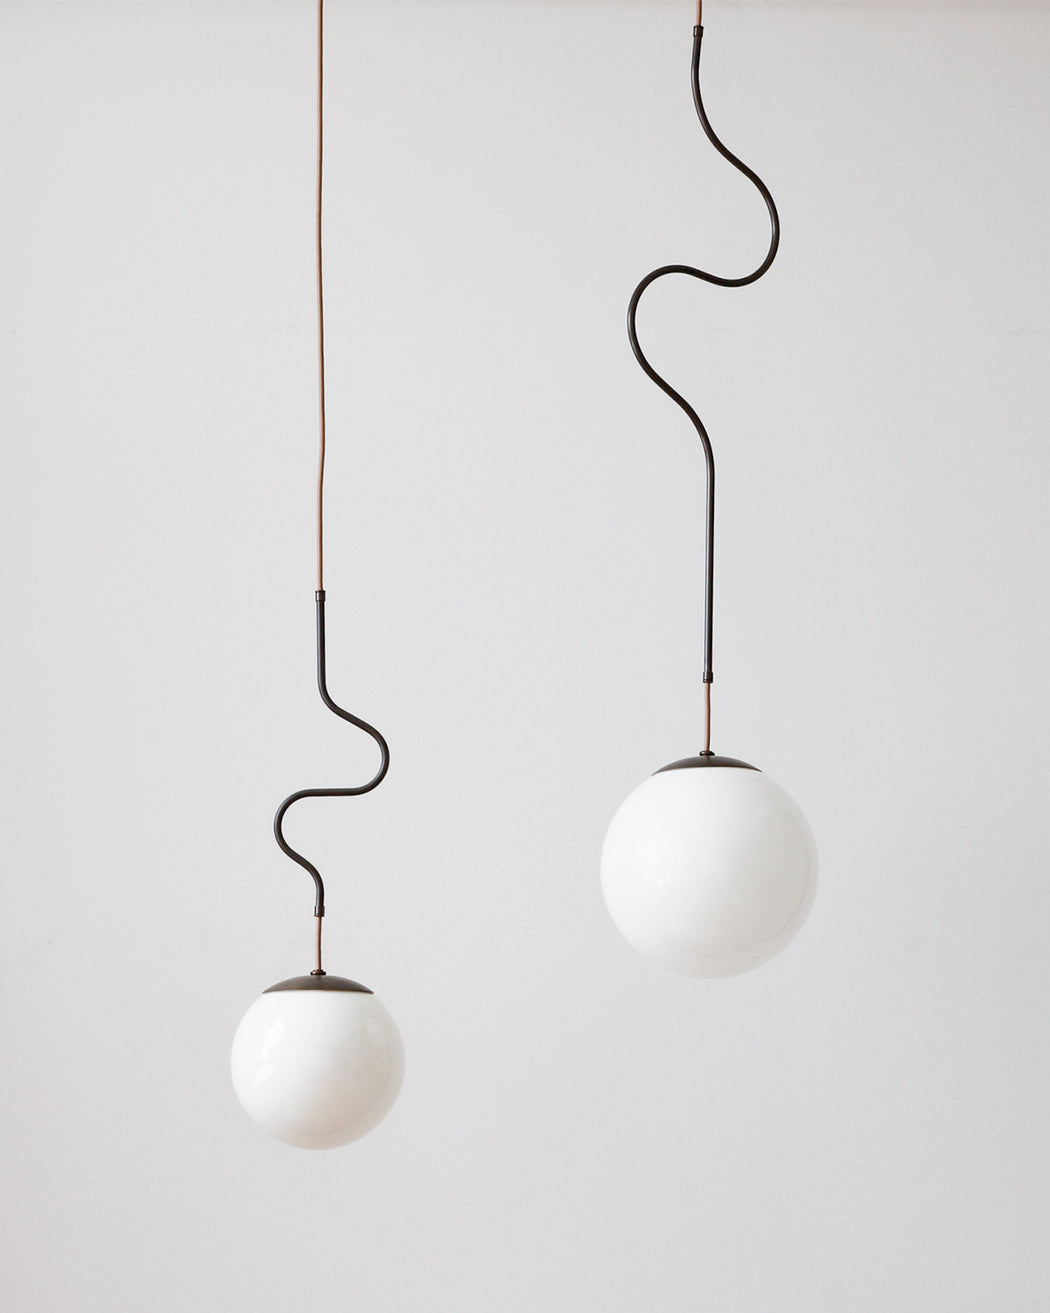 Oil rubbed bronze Contour ceiling pendant lights made by Lostine in Philadelphia, Pennsylvania.  Oil rubbed bronze modern lighting design with white glass globe.  Hardwired light fixture.  Simple interior design, made in the USA.